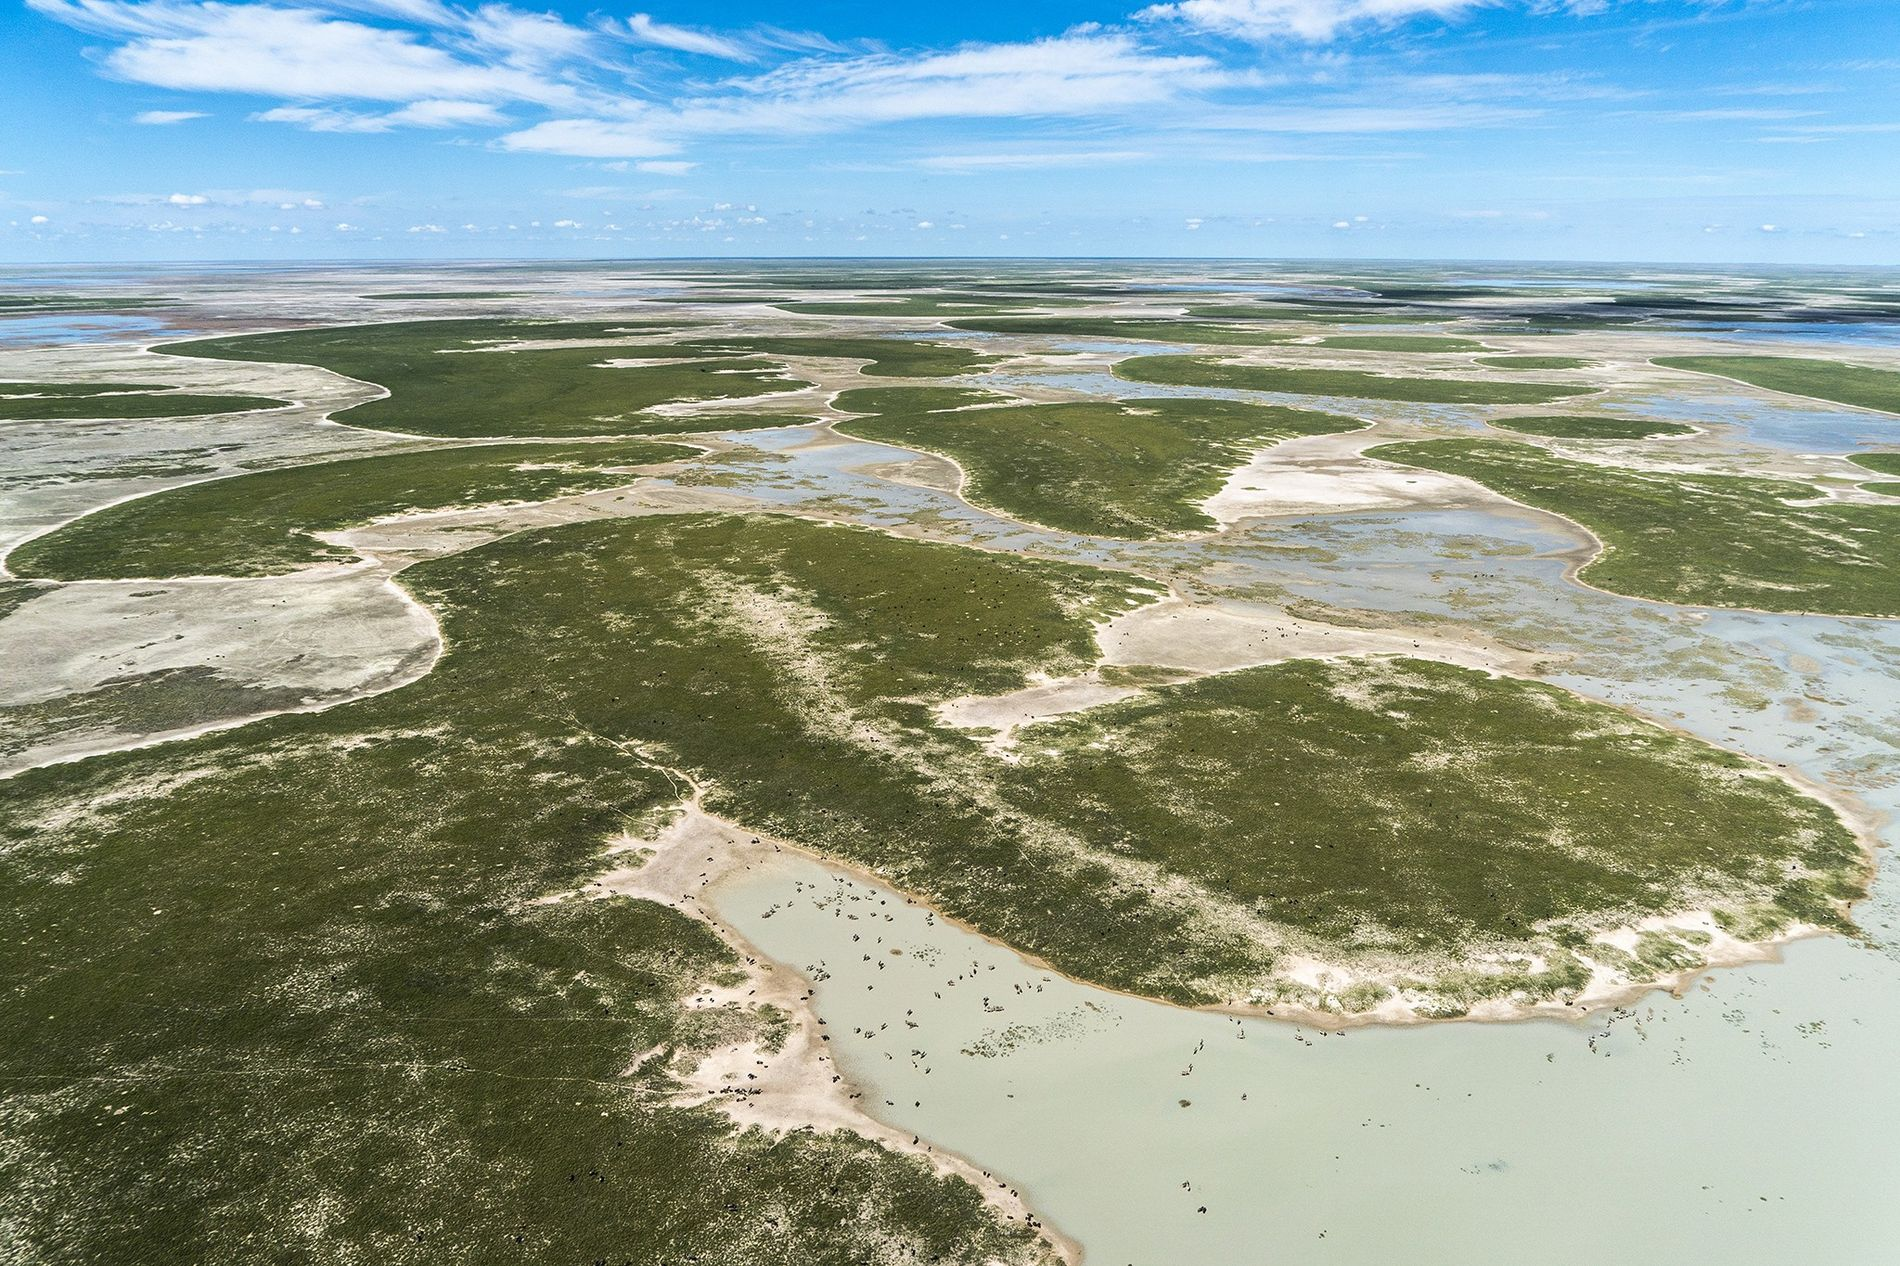 A controversial new study claims that ancient wetlands south of the Zambezi River were the oasis from which all modern humans emerged. Today, the region is one of the world's largest salt flats known as the Makgadikgadi pans.